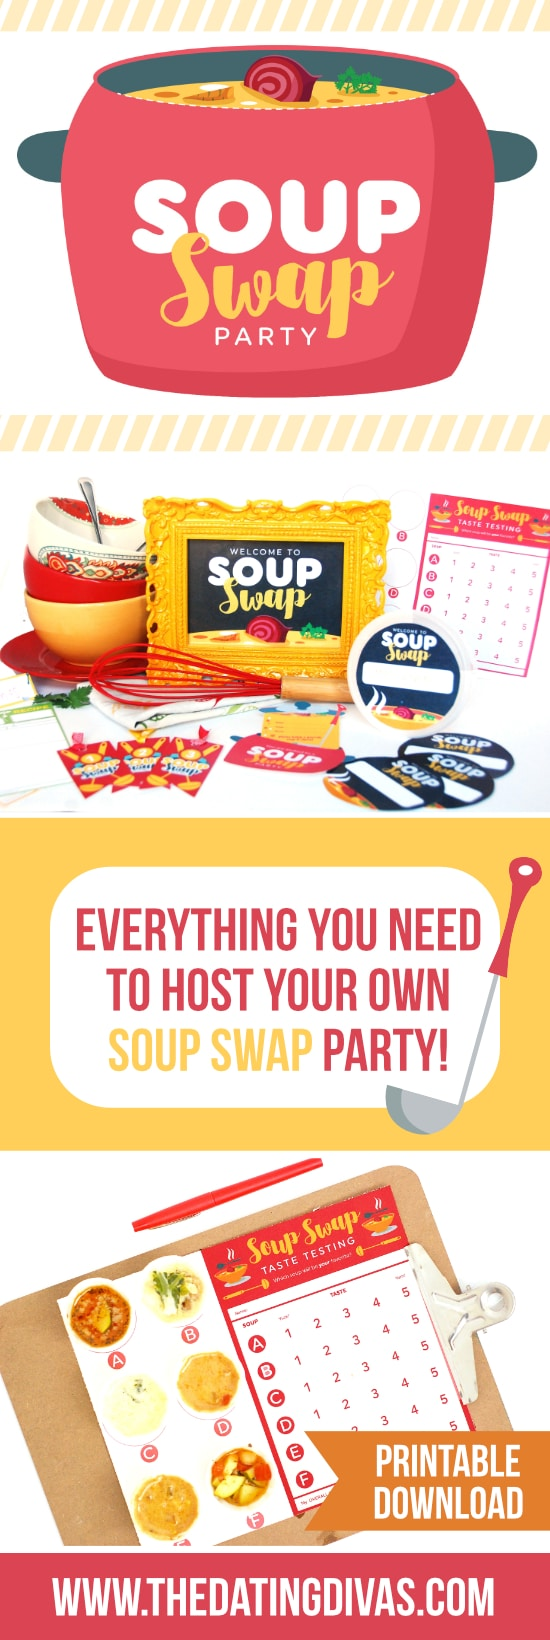 Host a Soup Swap Party